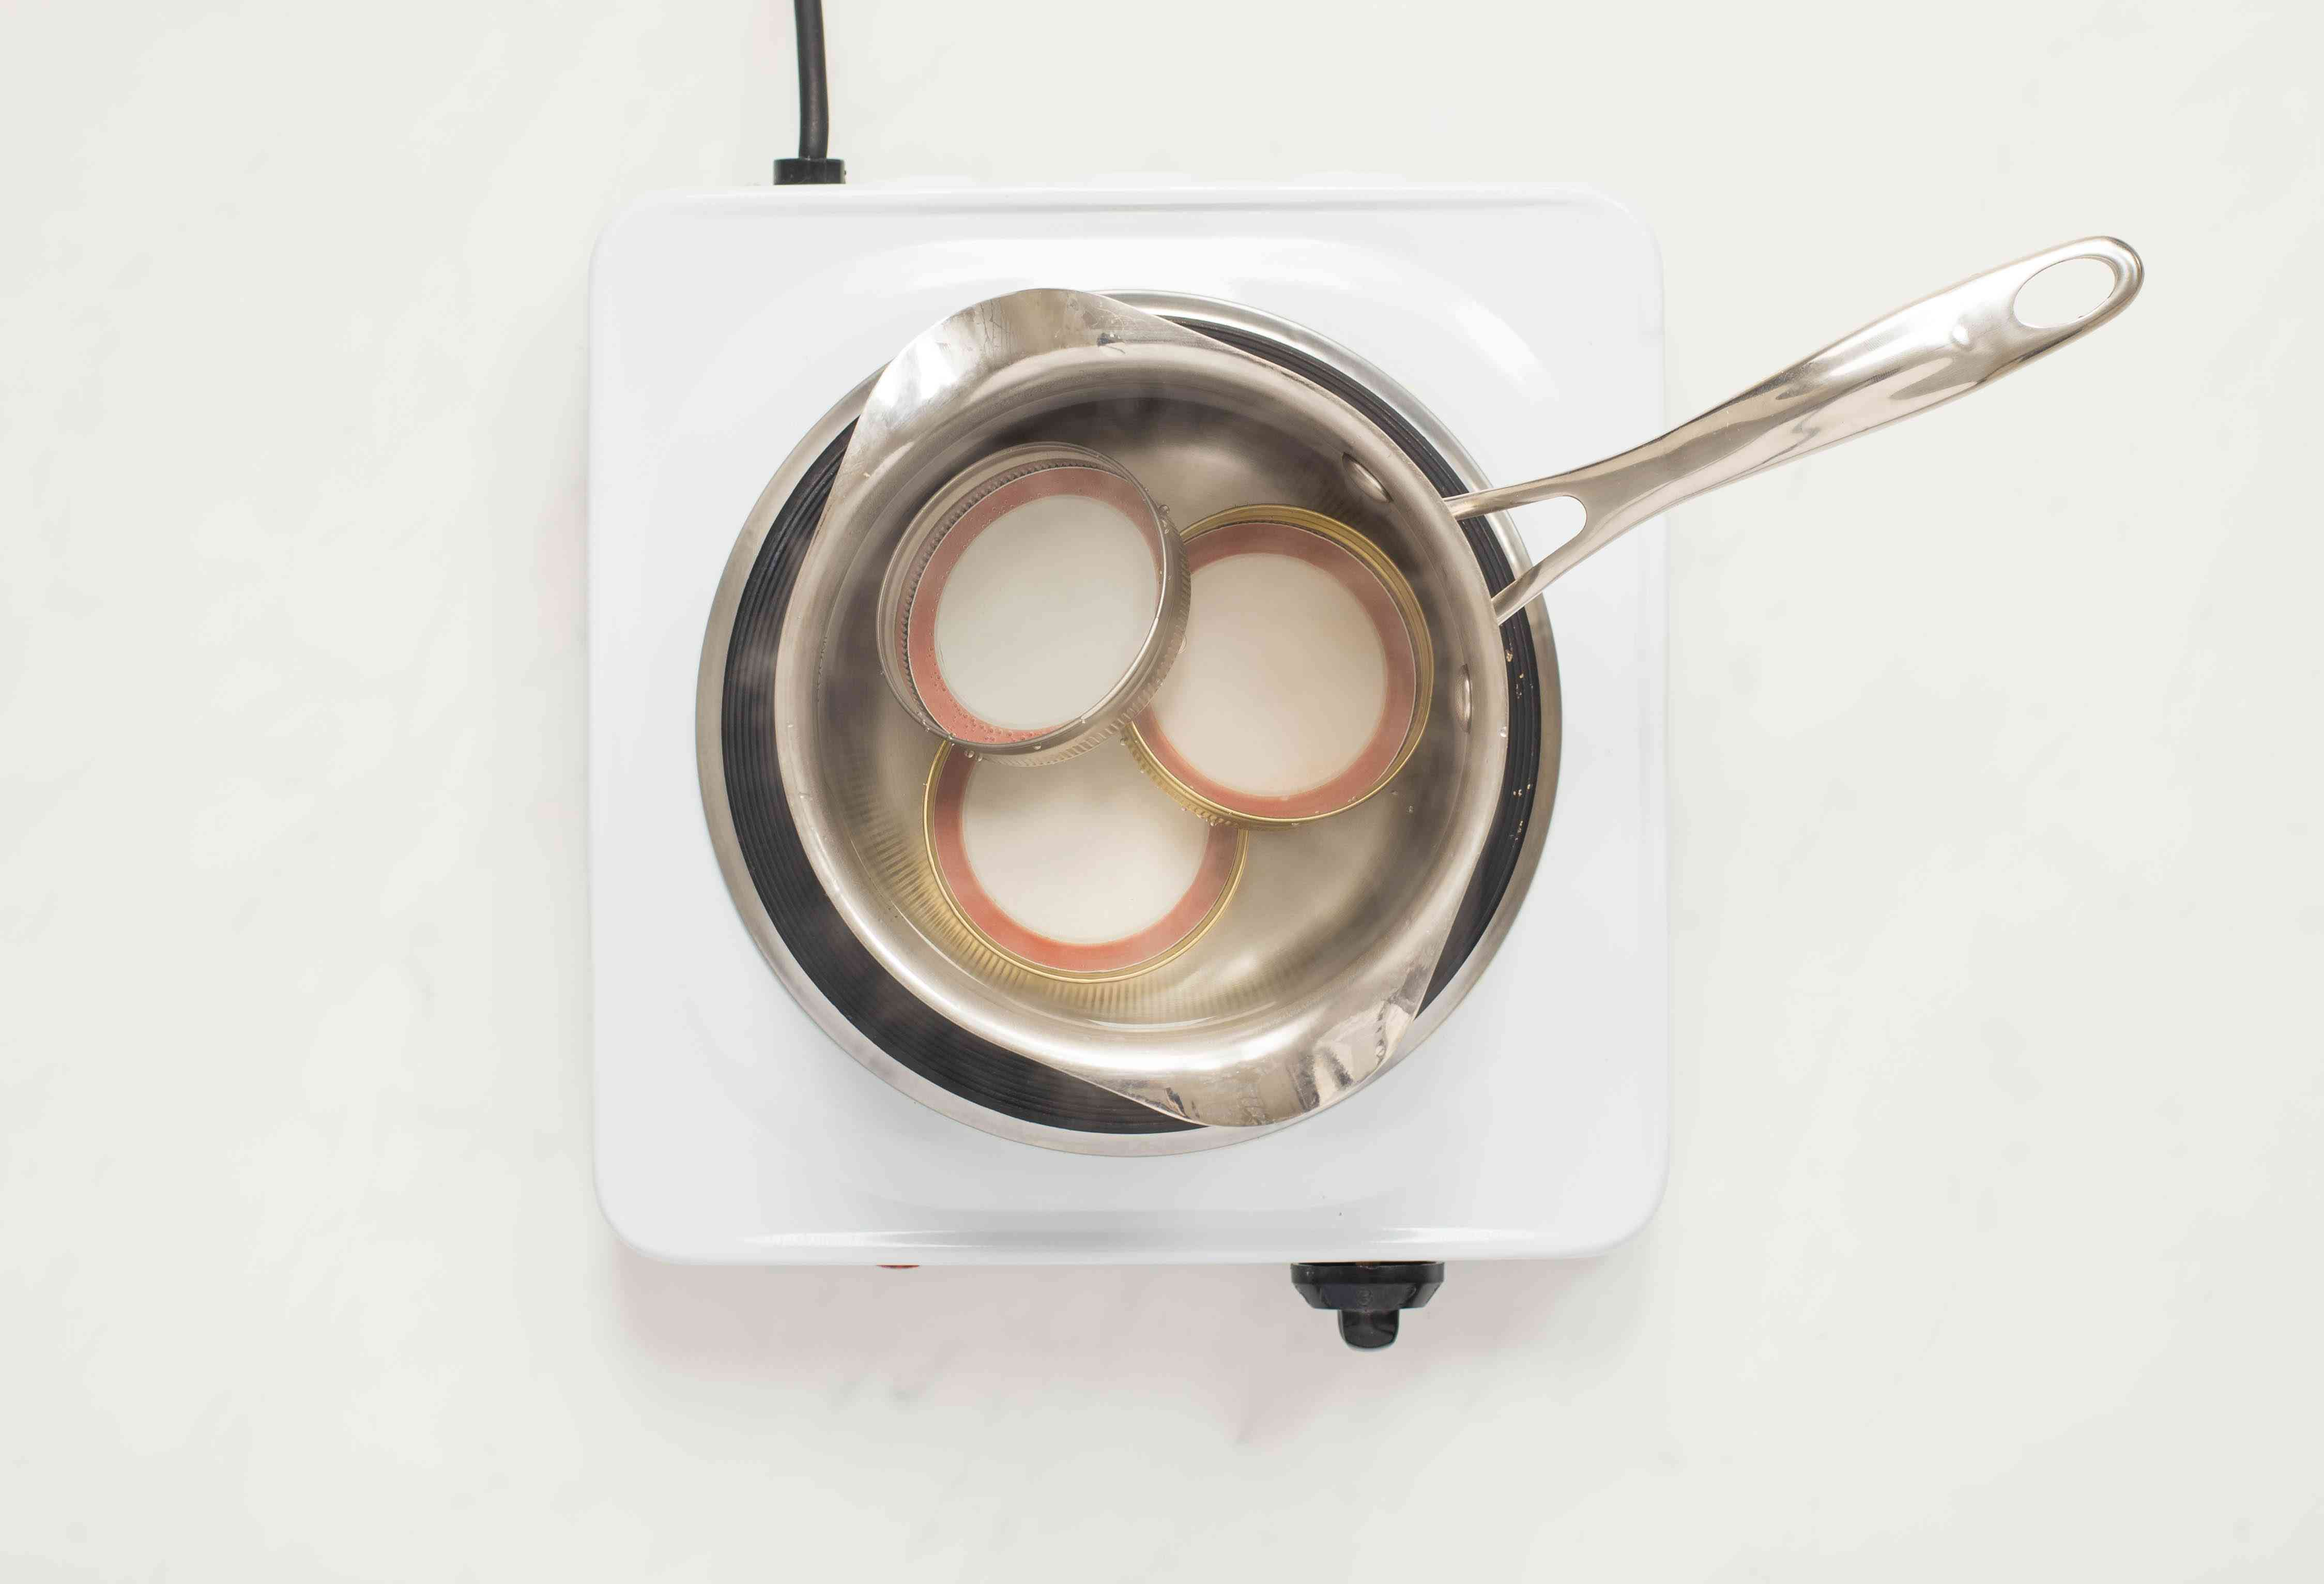 Lids are heated in a small saucepan